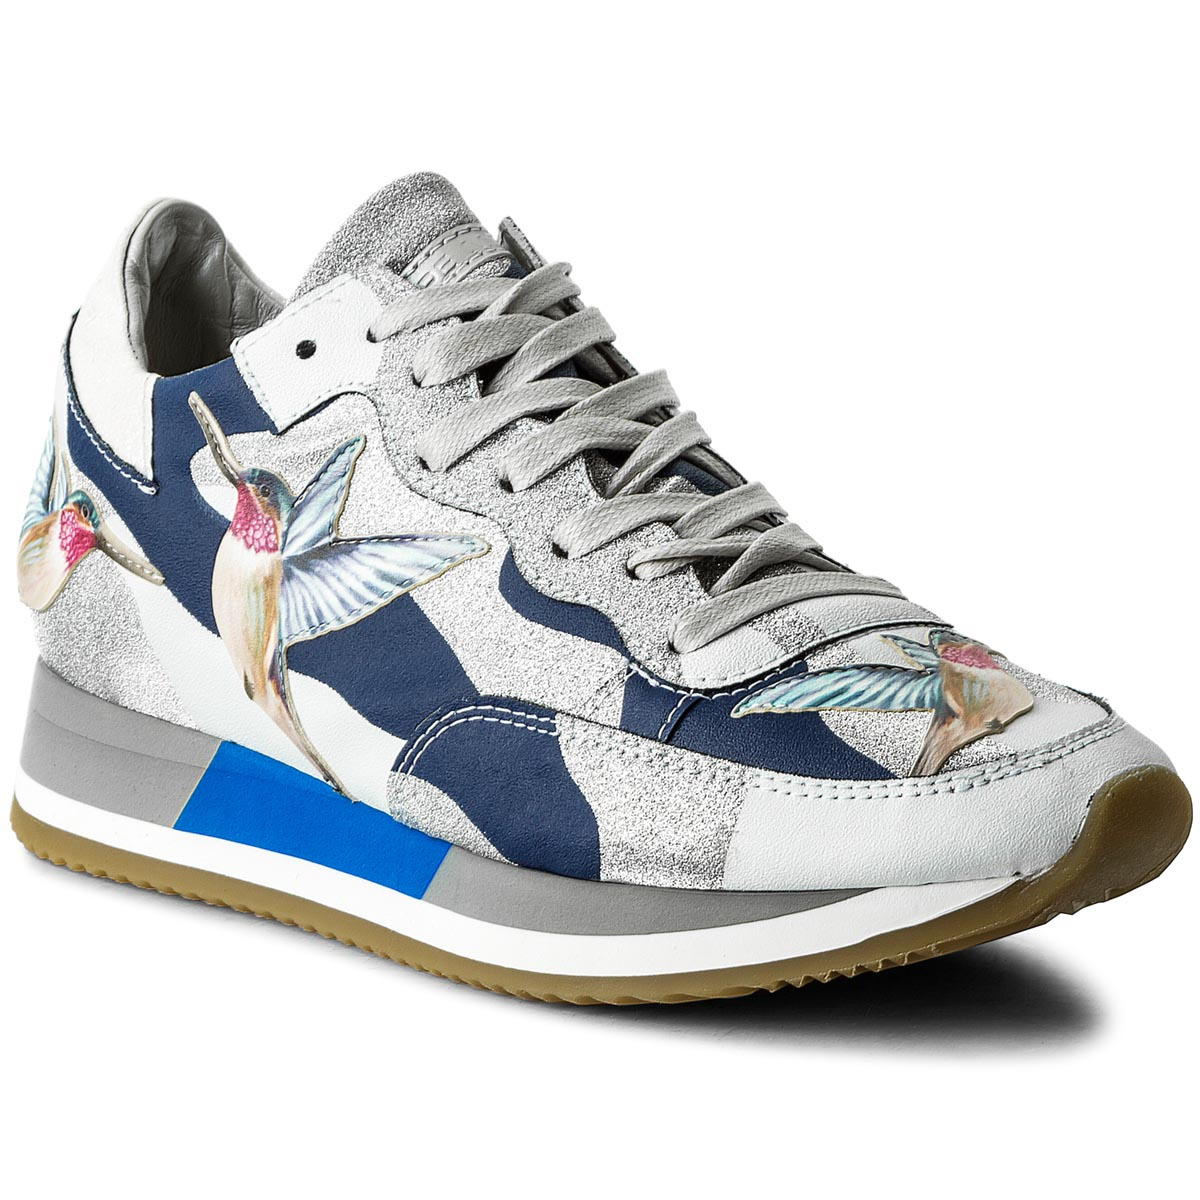 Sneakersy PHILIPPE MODEL - Etoile TBLD BG10 Tropical Bird Bleu